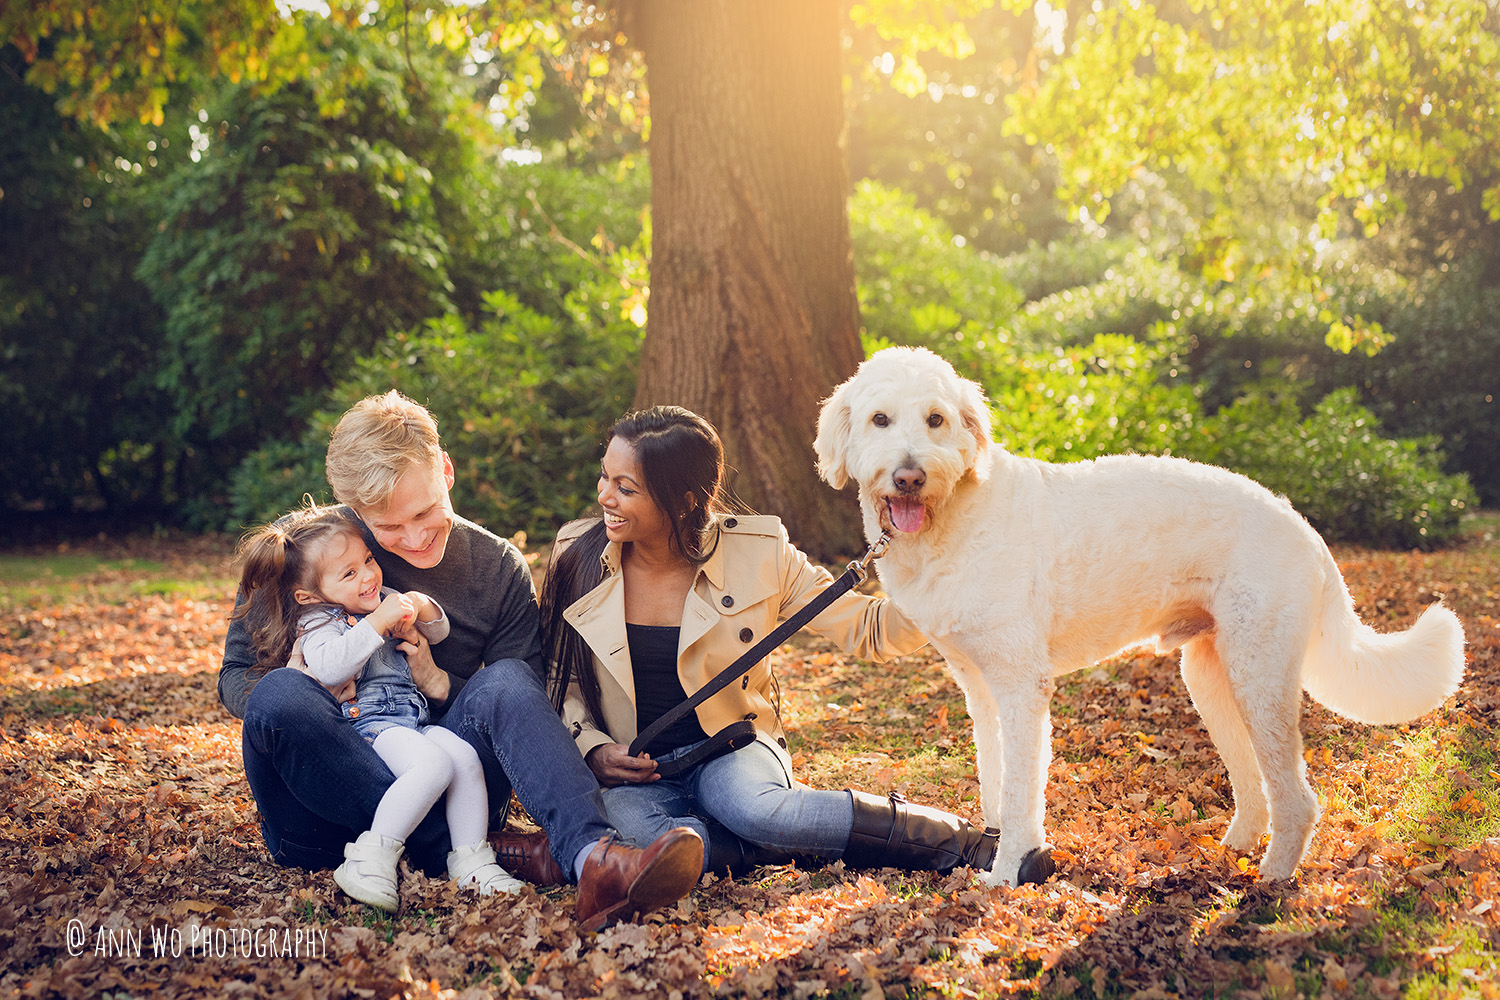 ann-wo-family-photography-outdoor-lifestyle-white-dog-london.jpg